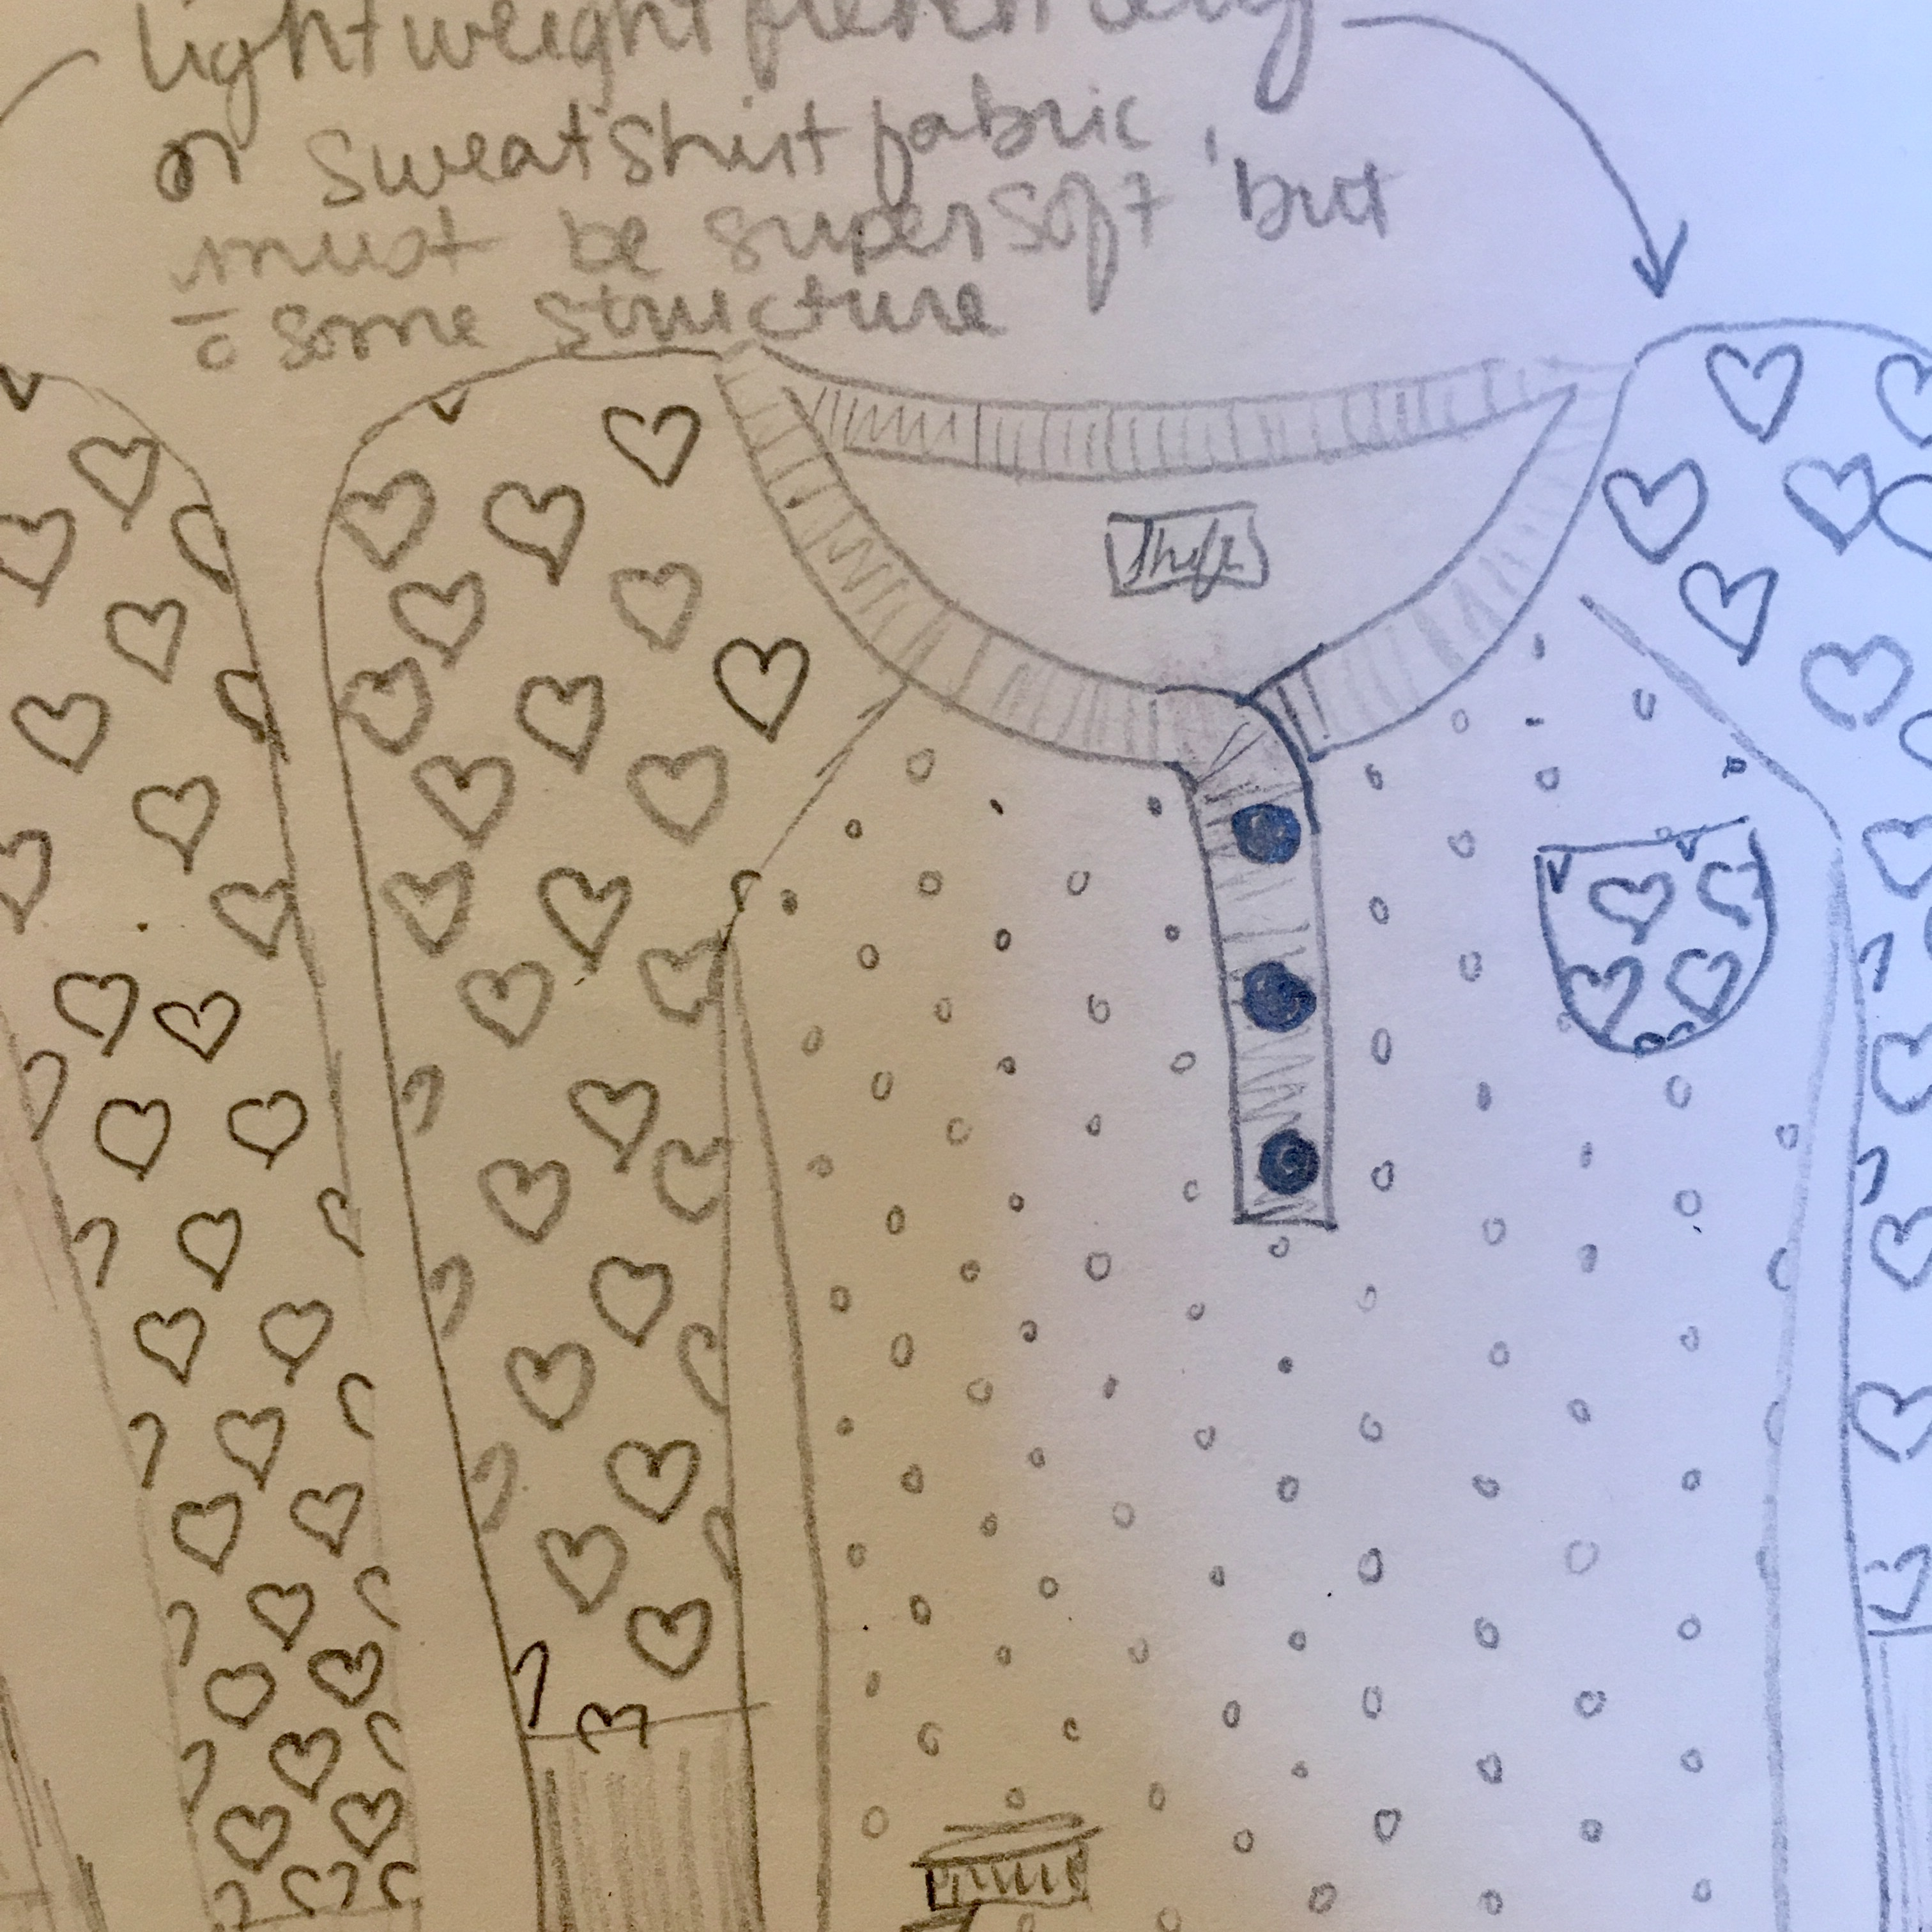 First Sketch of Clothing Line Idea